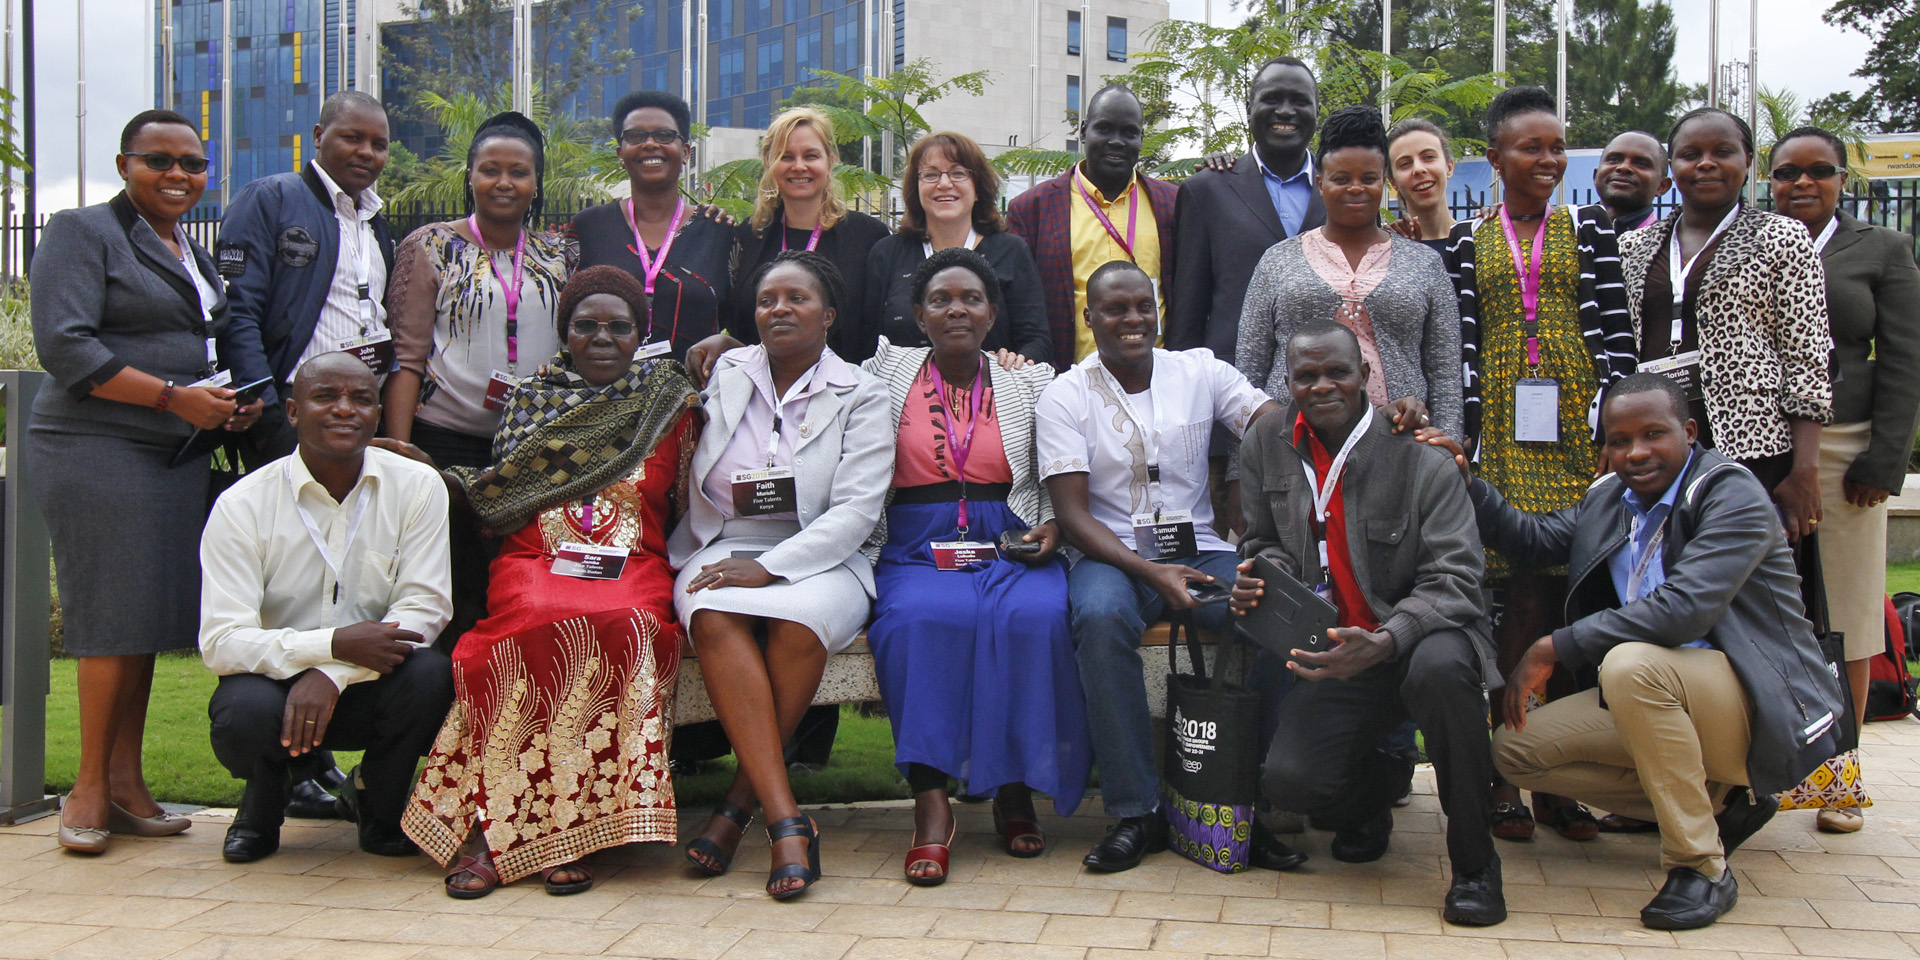 Five Talents program leaders and trainers from across Eastern Africa.